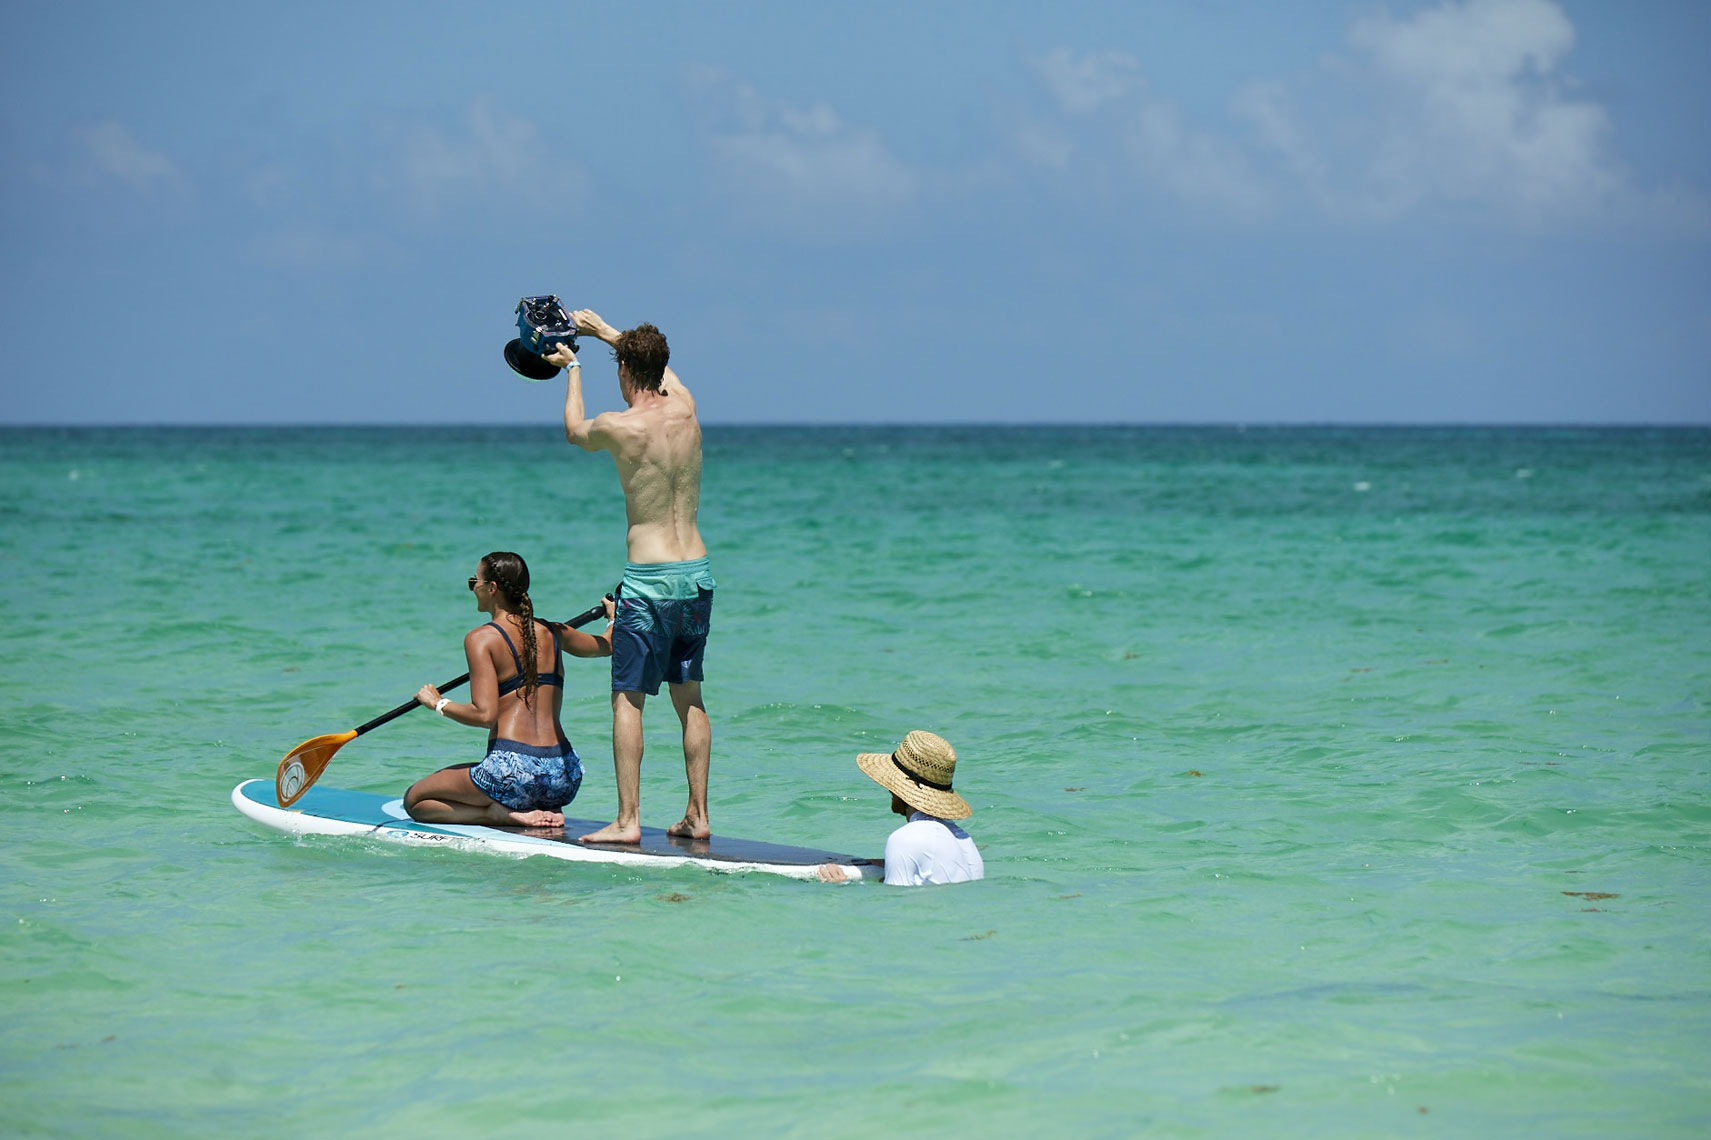 RCI_Cozumel_Board_Sports_SUP_Beach_Couples_01_00866